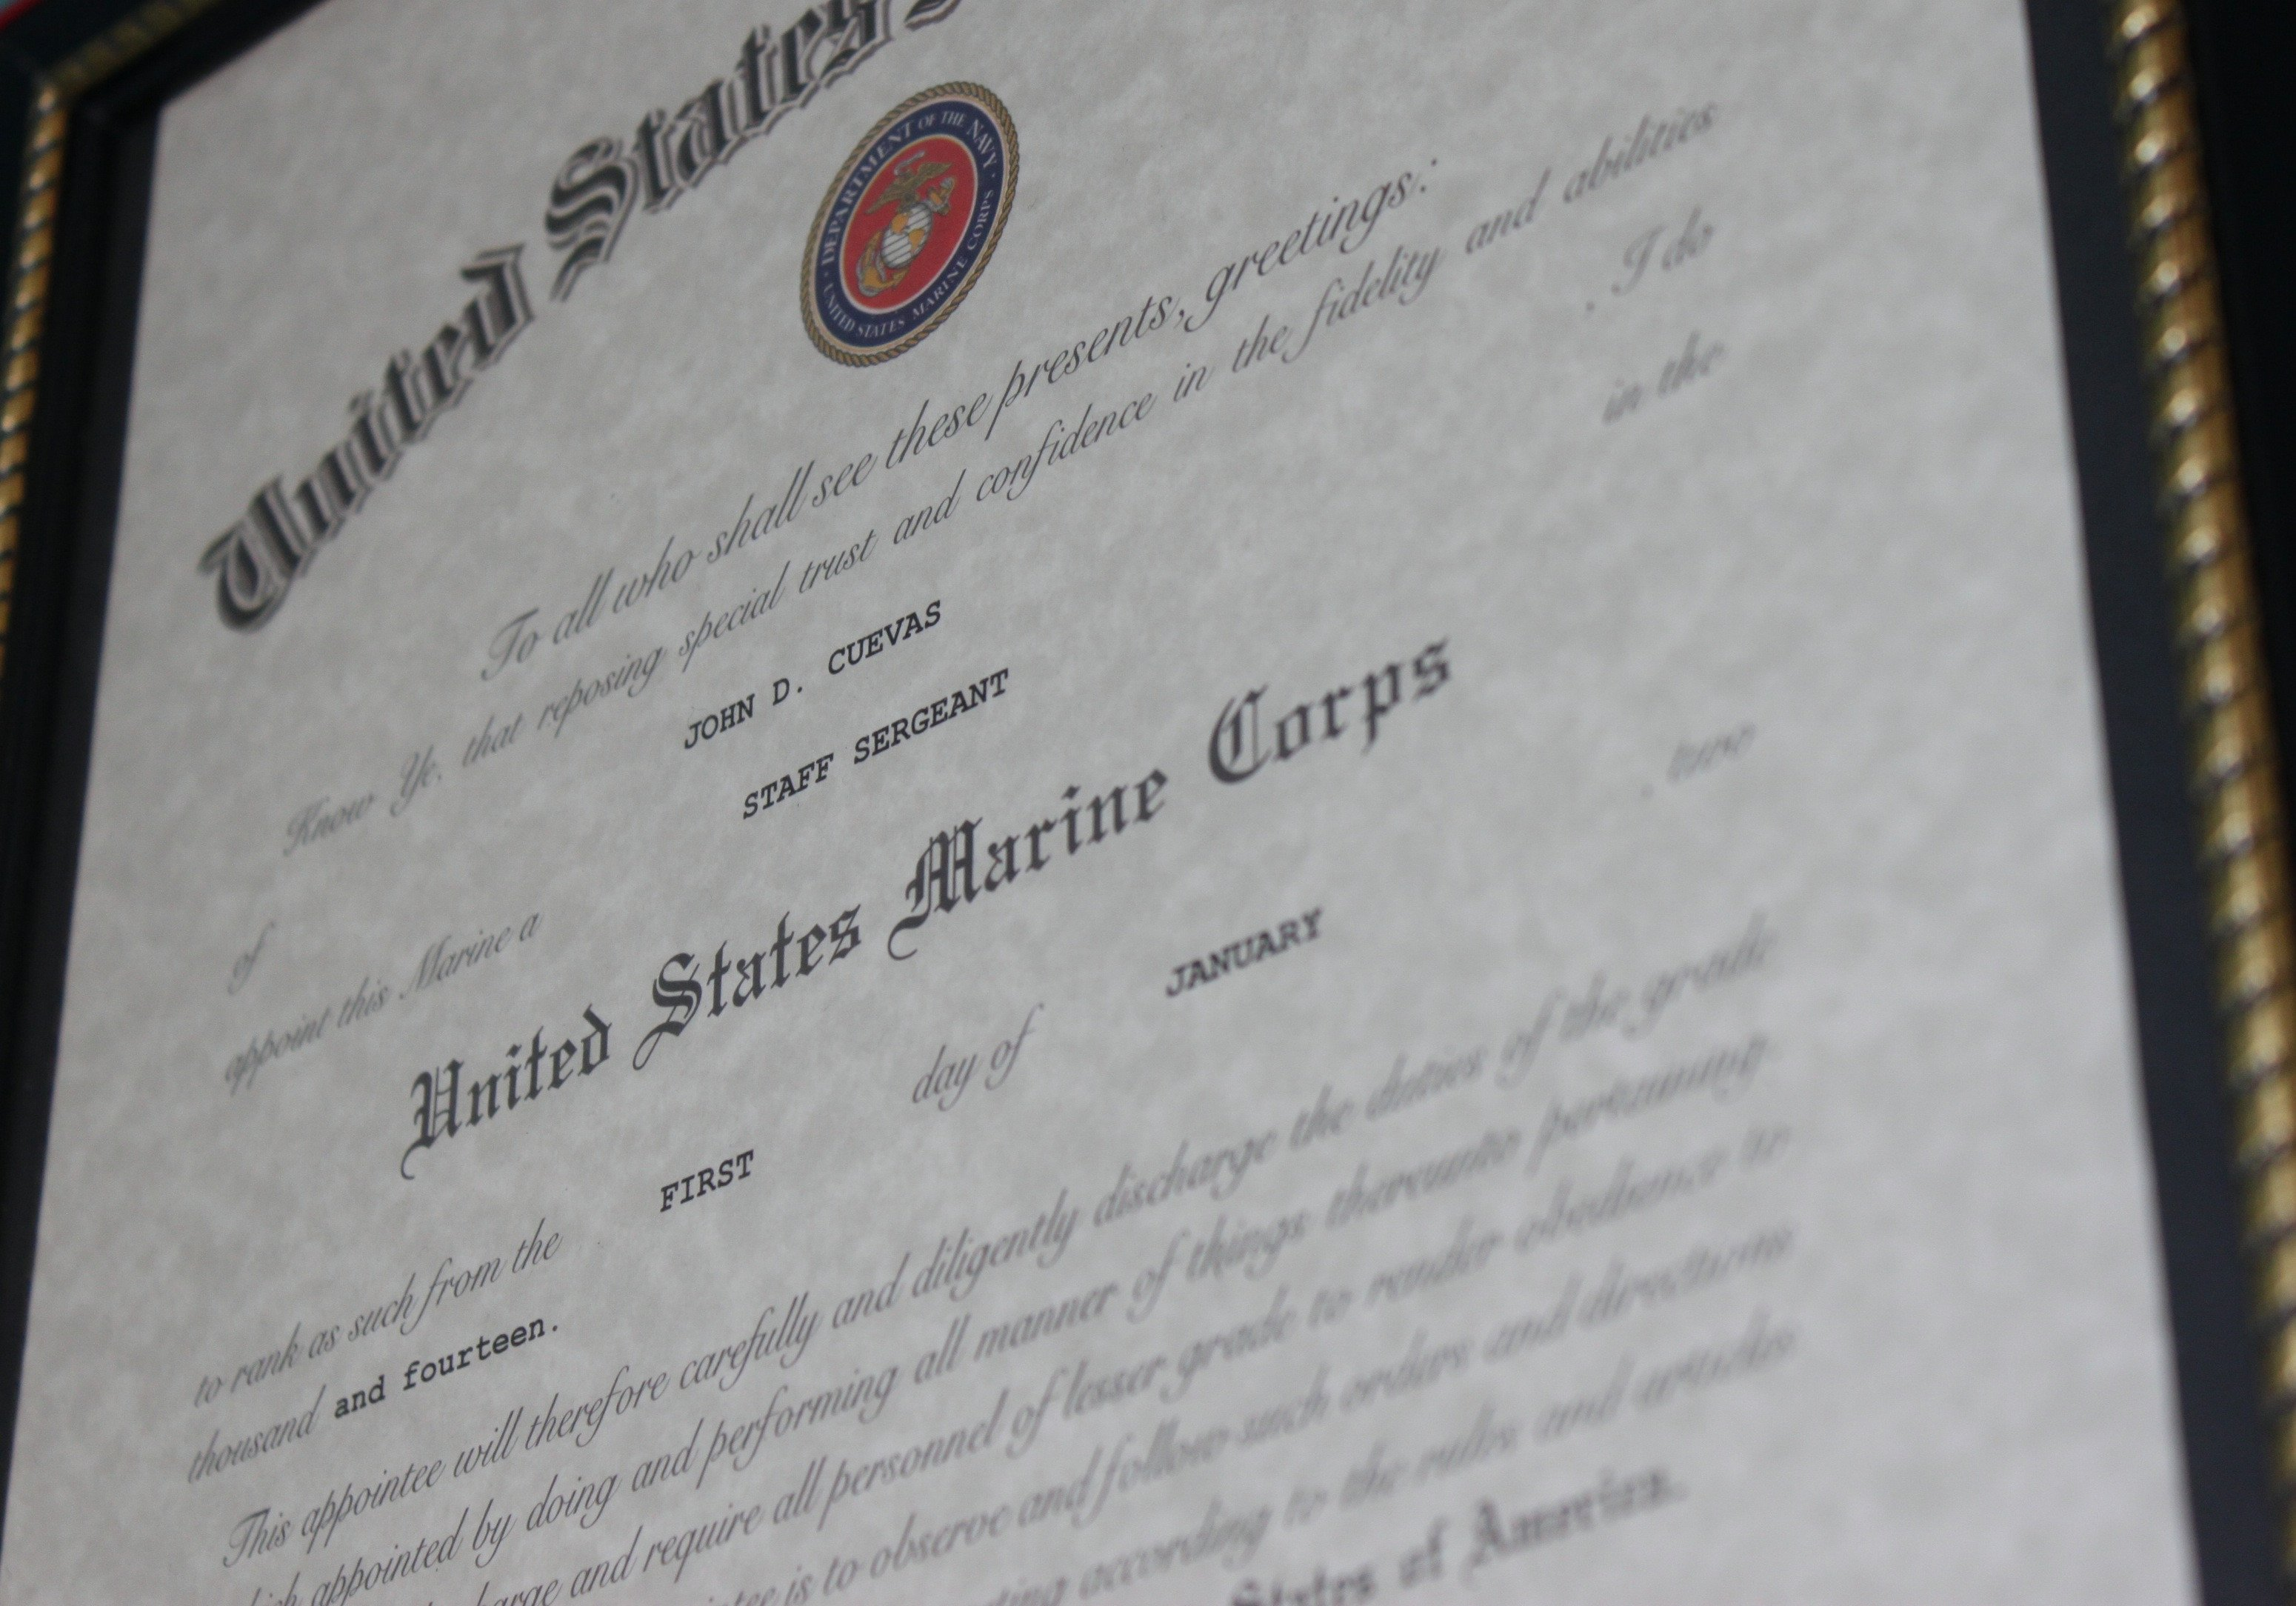 Promotion Warrant Template Usmc Marine Corps – the Fameless Woodworker